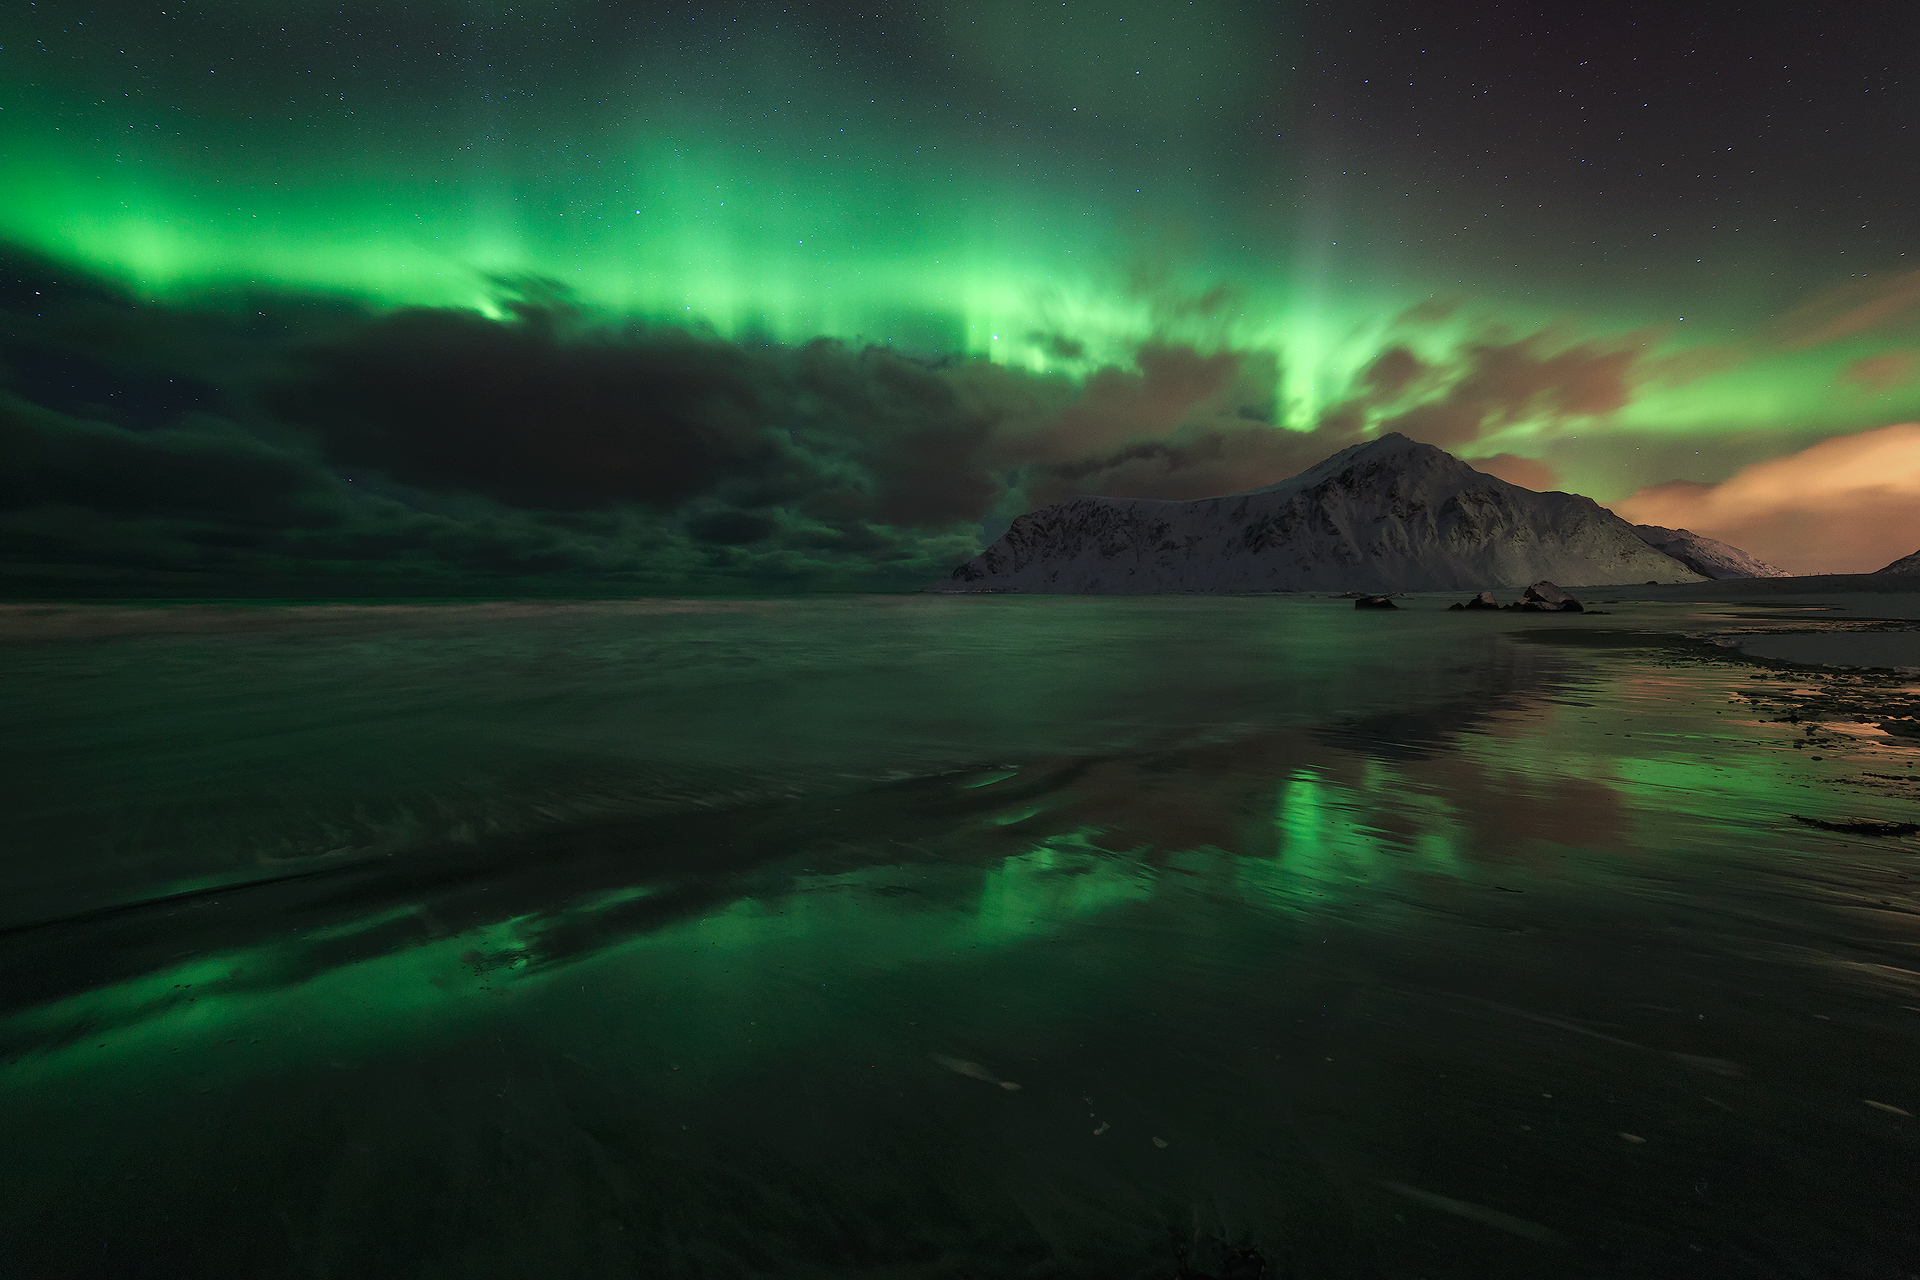 Strong northern lights and clouds -> Doesn't look good.